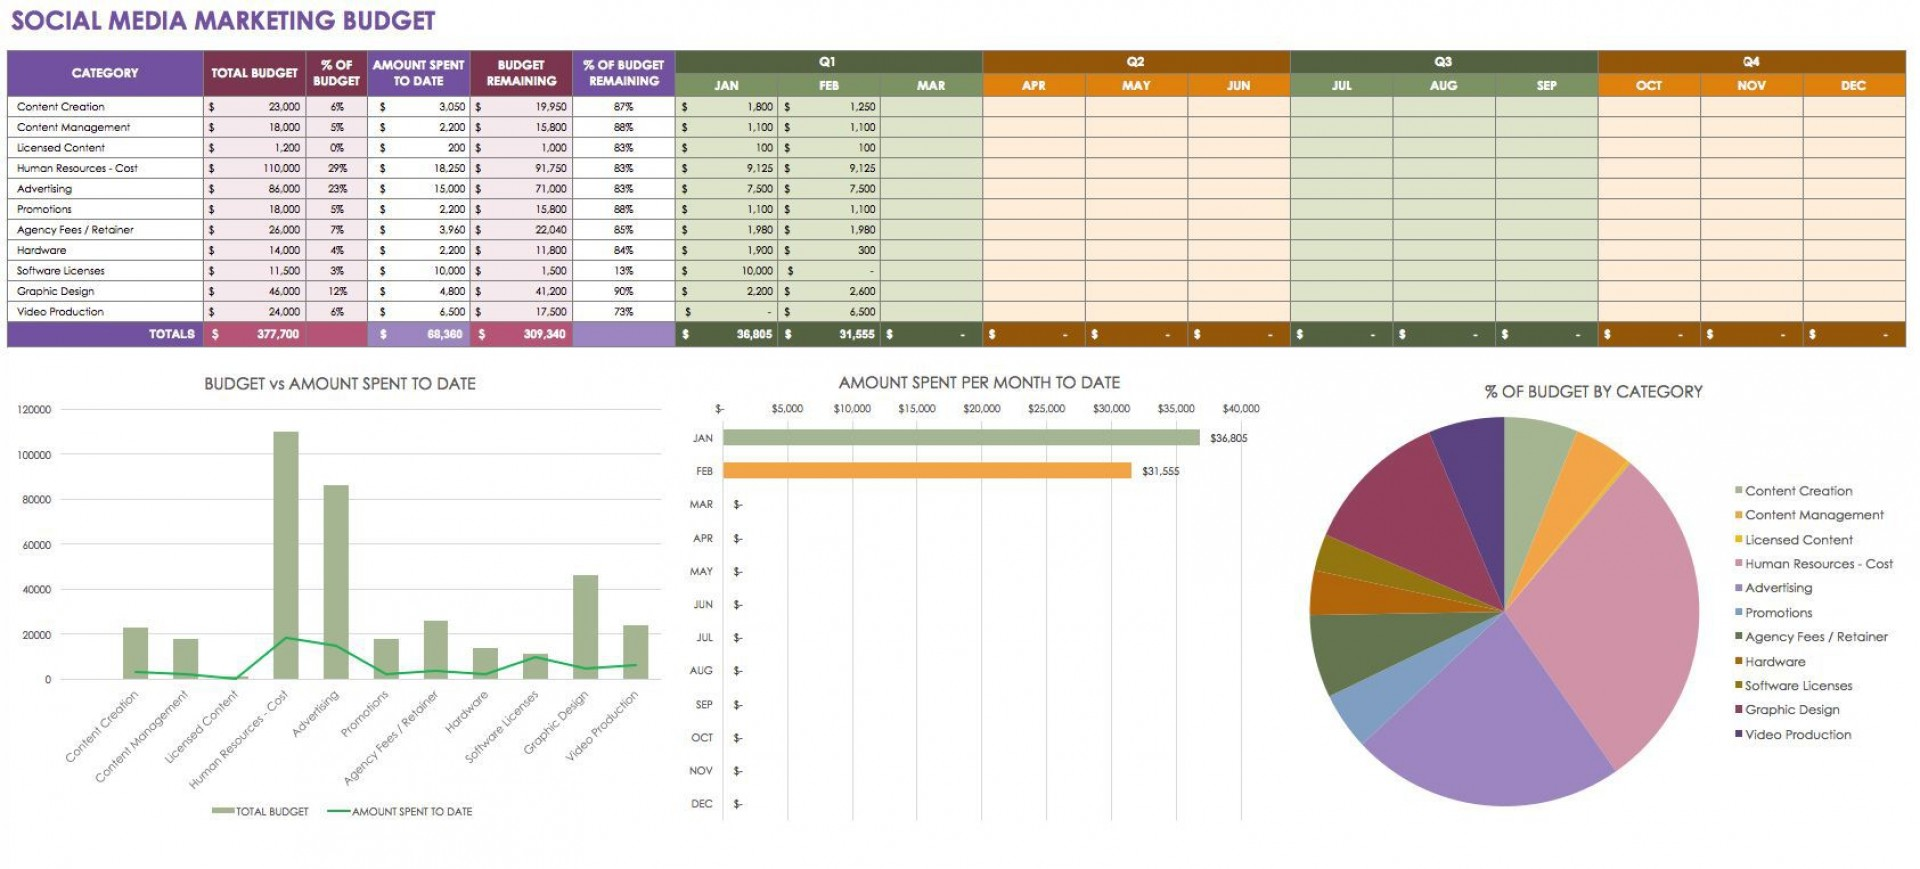 001 Exceptional Video Production Budget Template Image  Example Excel Sample1920